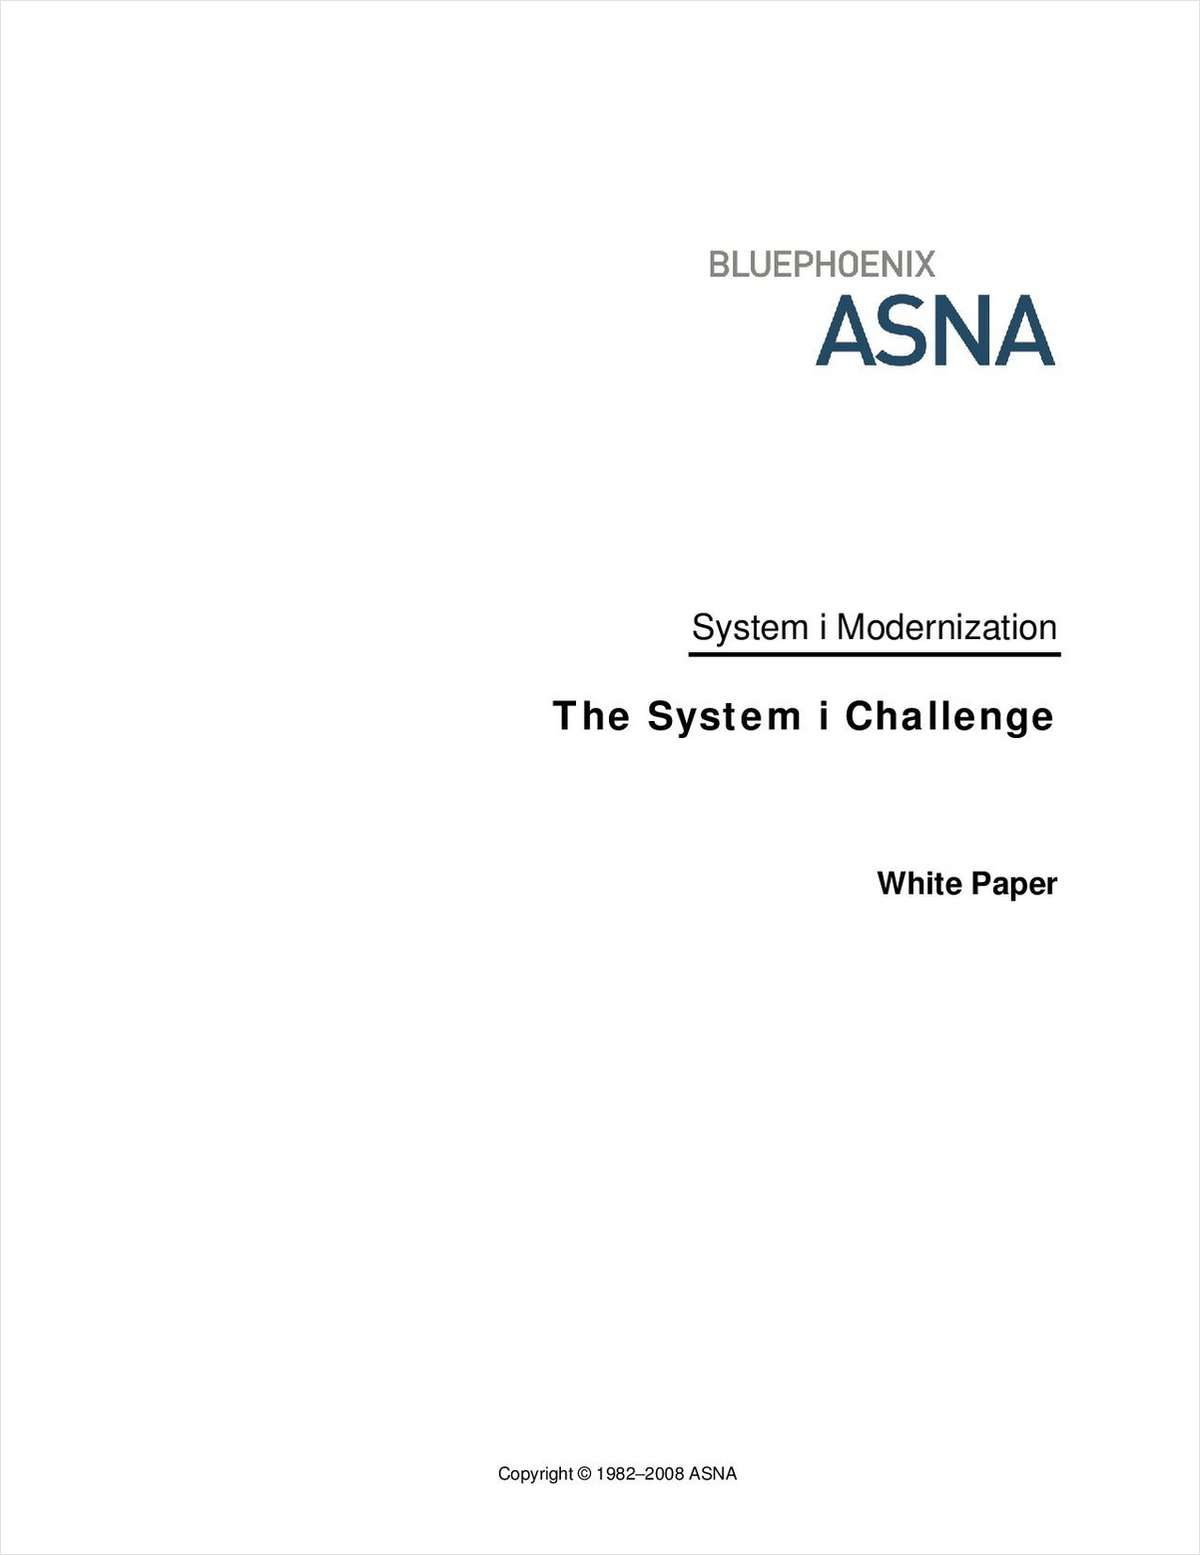 The System i Challenge